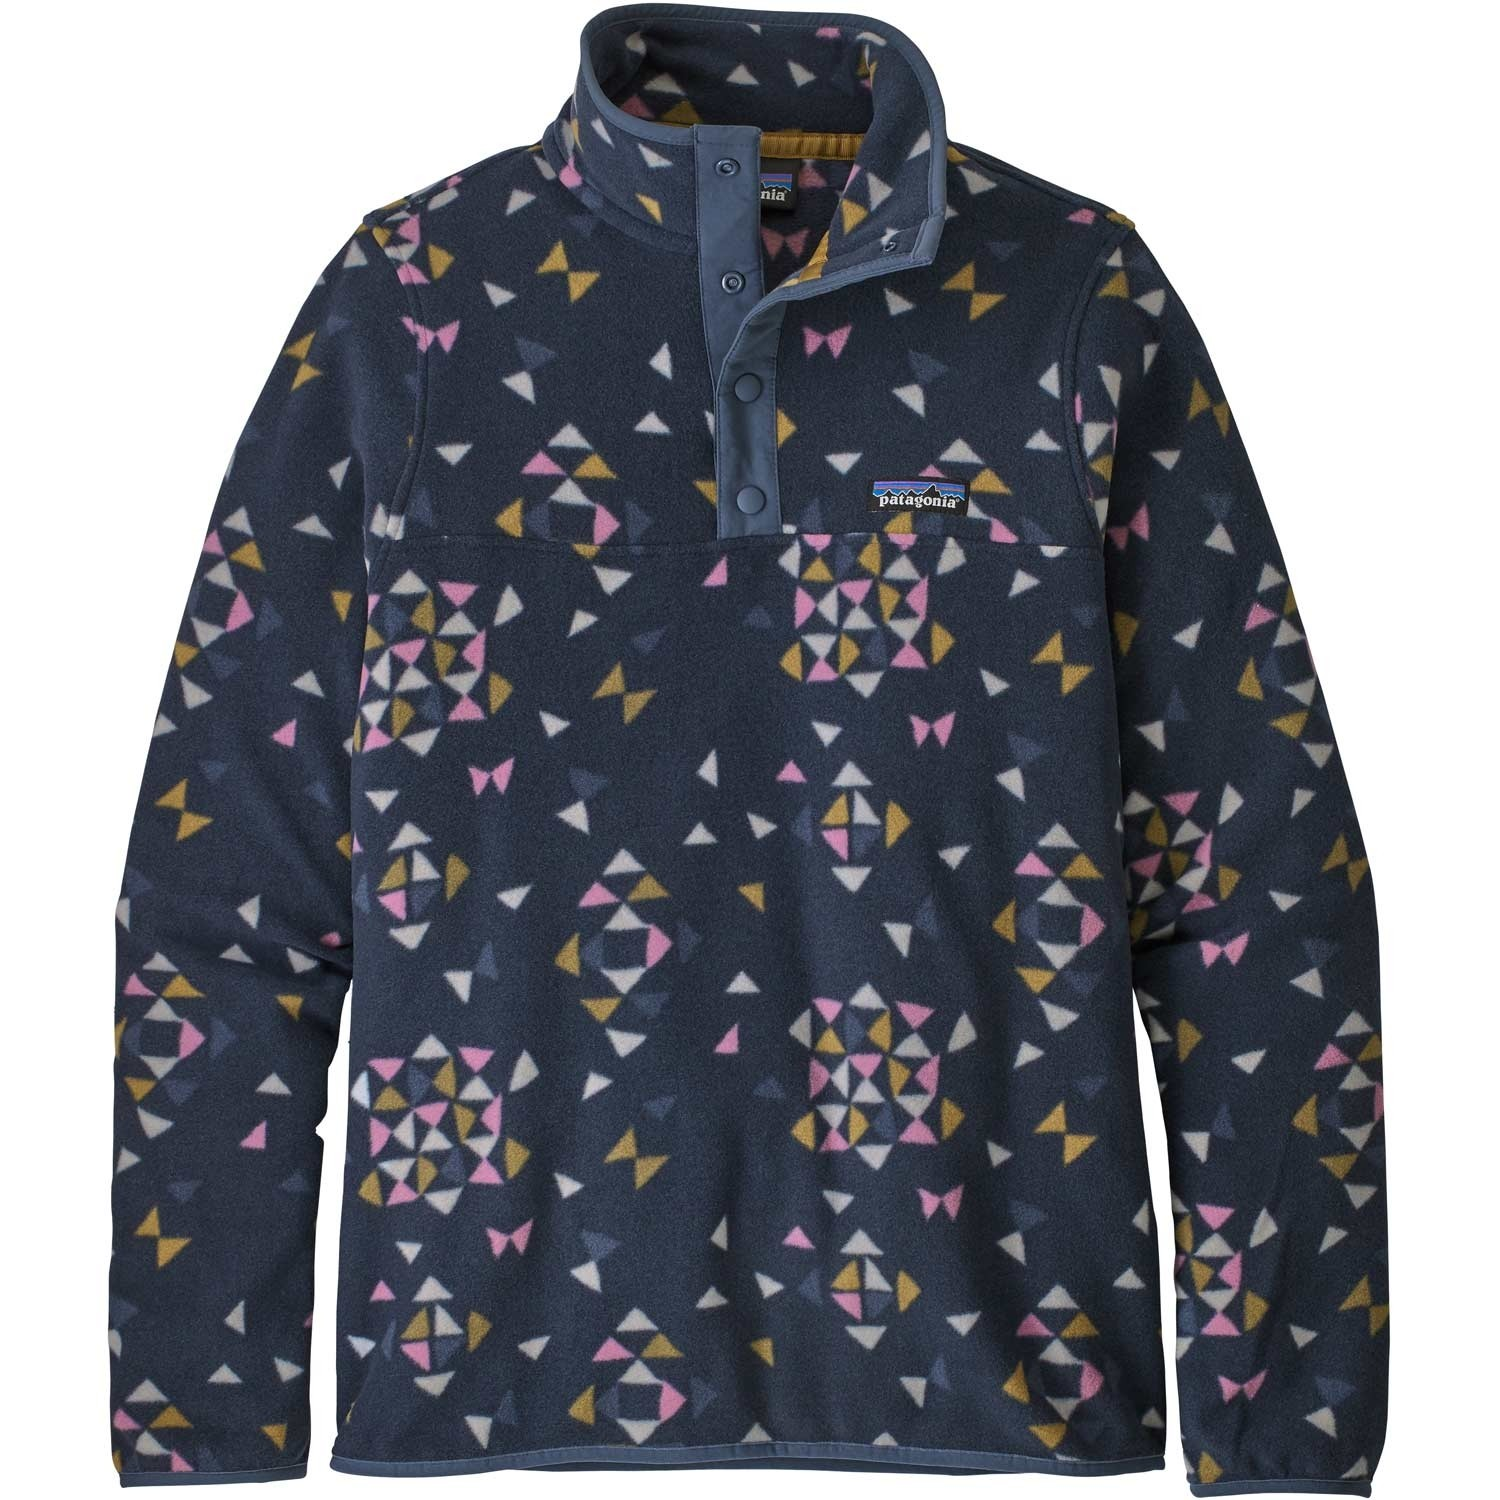 Patagonia Micro D Snap-T Pullover - Women's - Quilty Big/New Navy